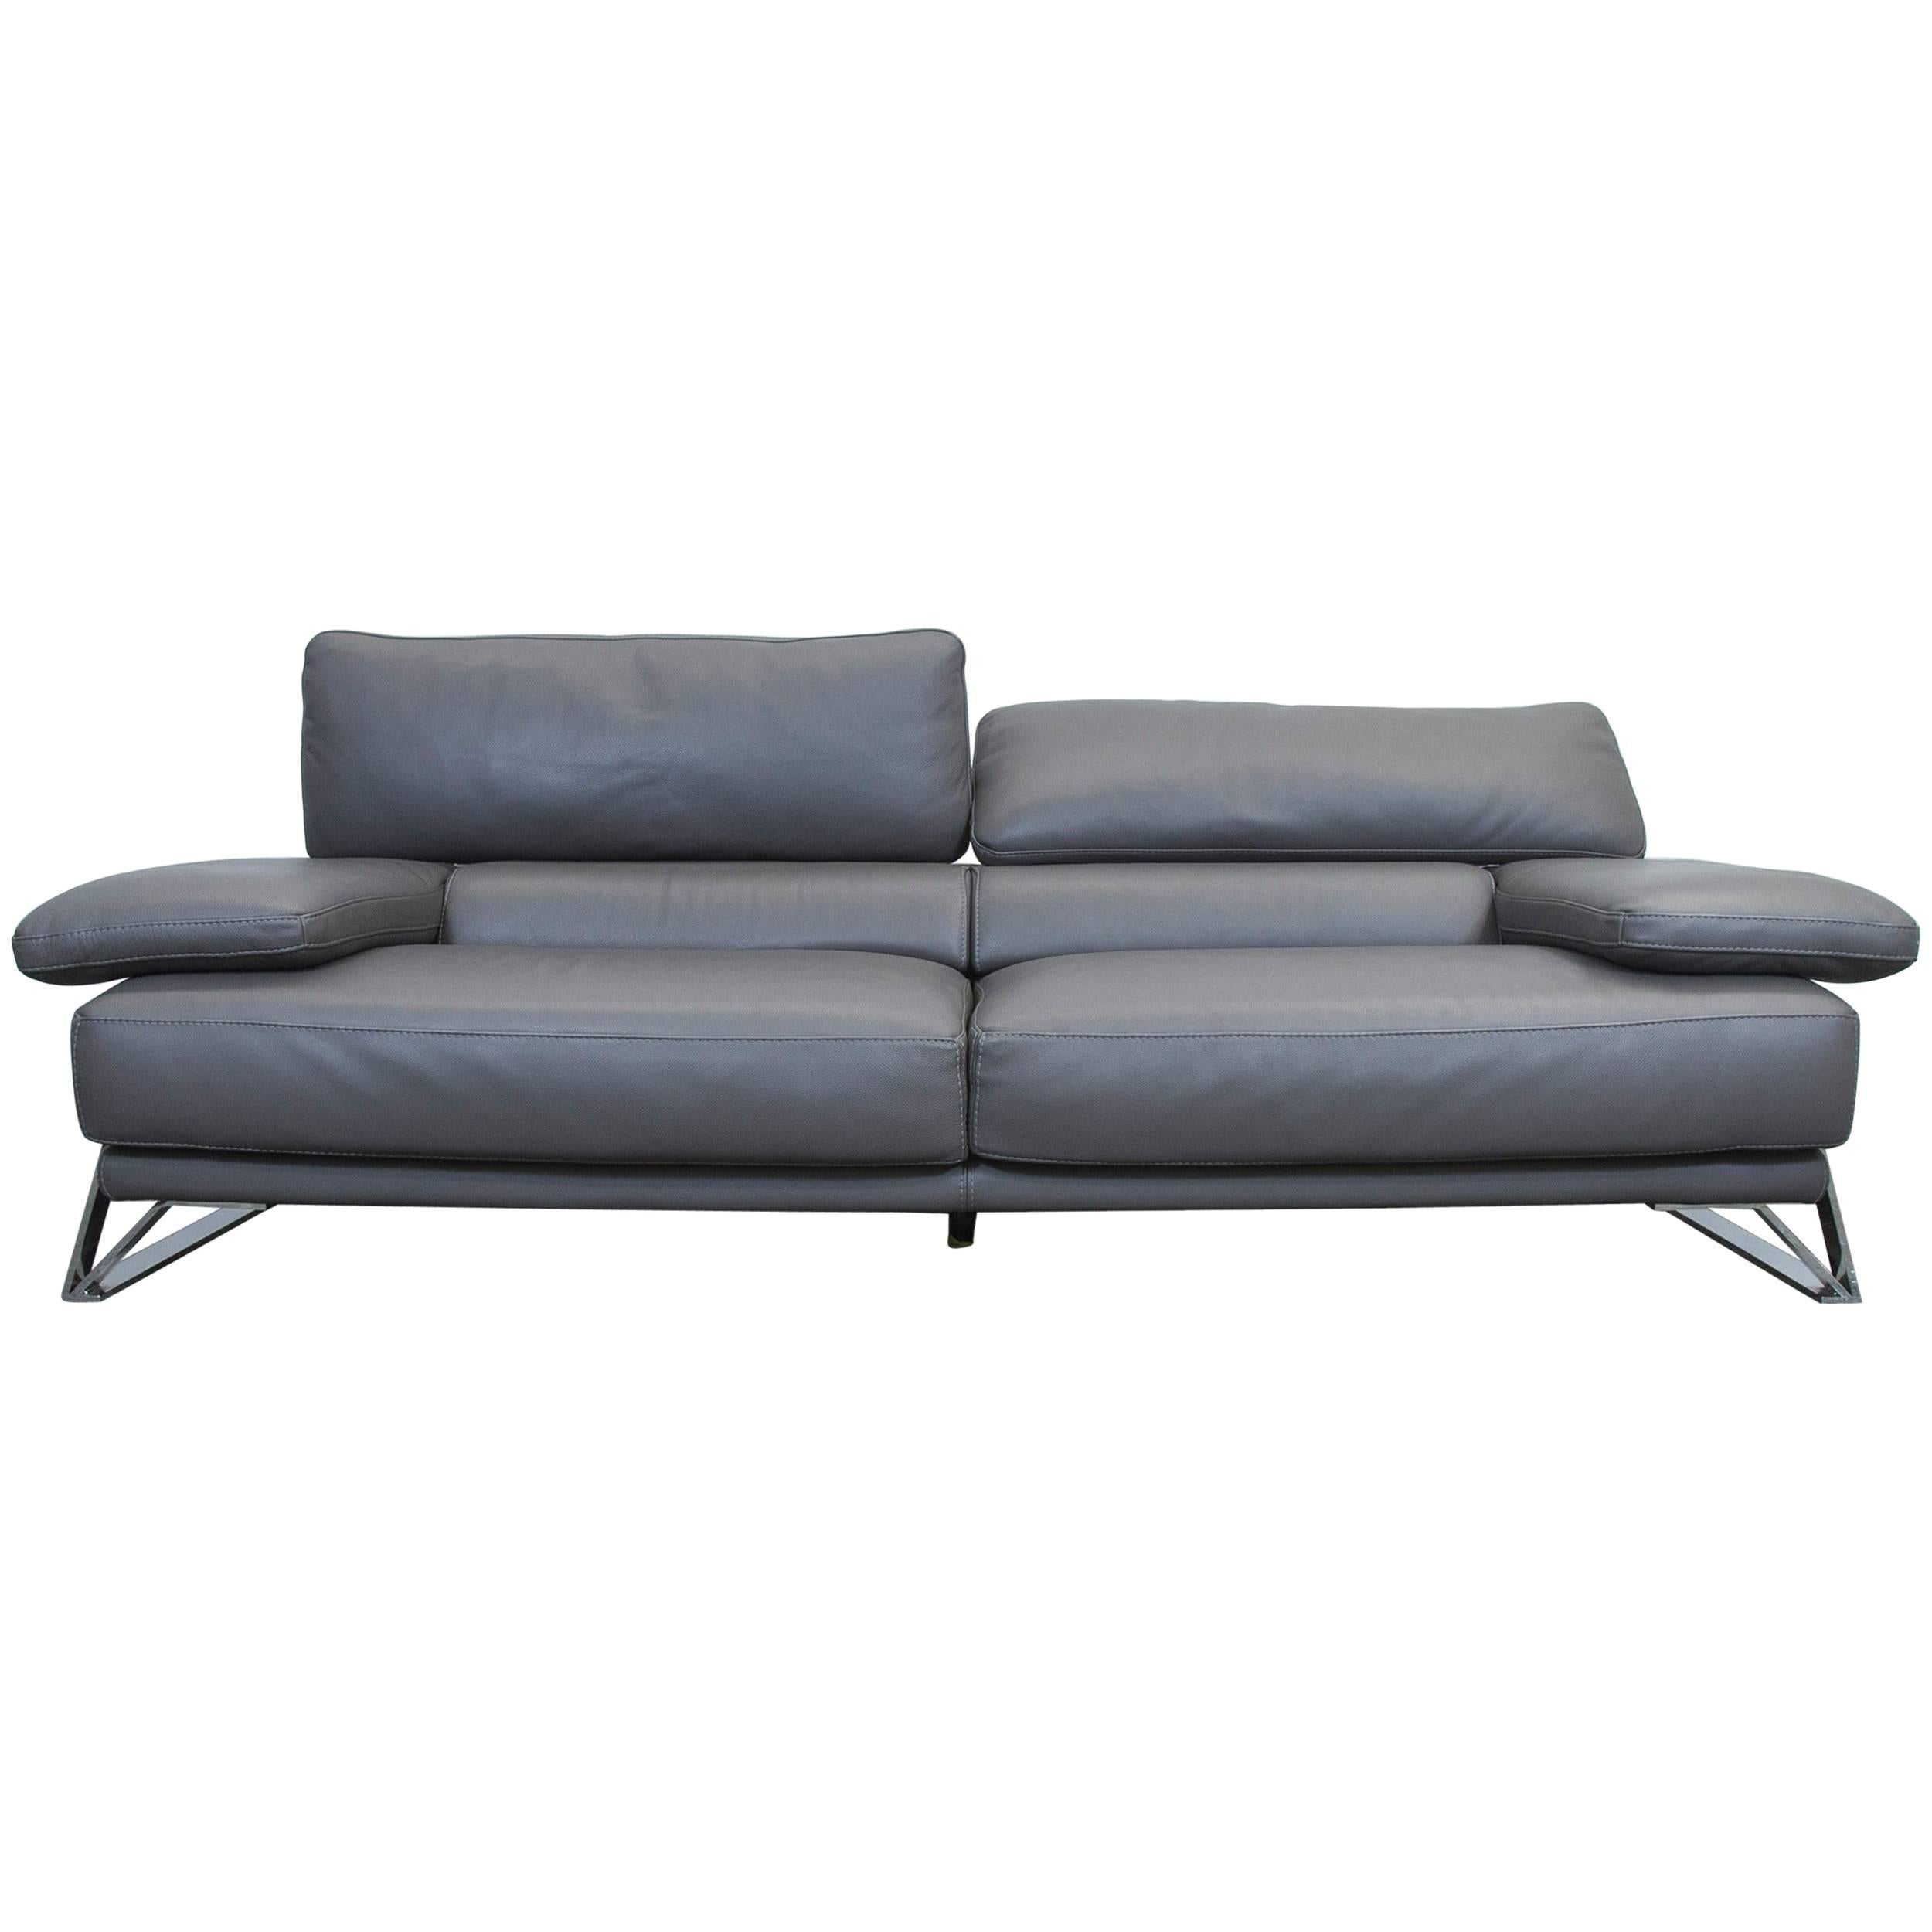 Roche Bobois Designer Sofa Grey Leather Three Seat Couch Function Modern